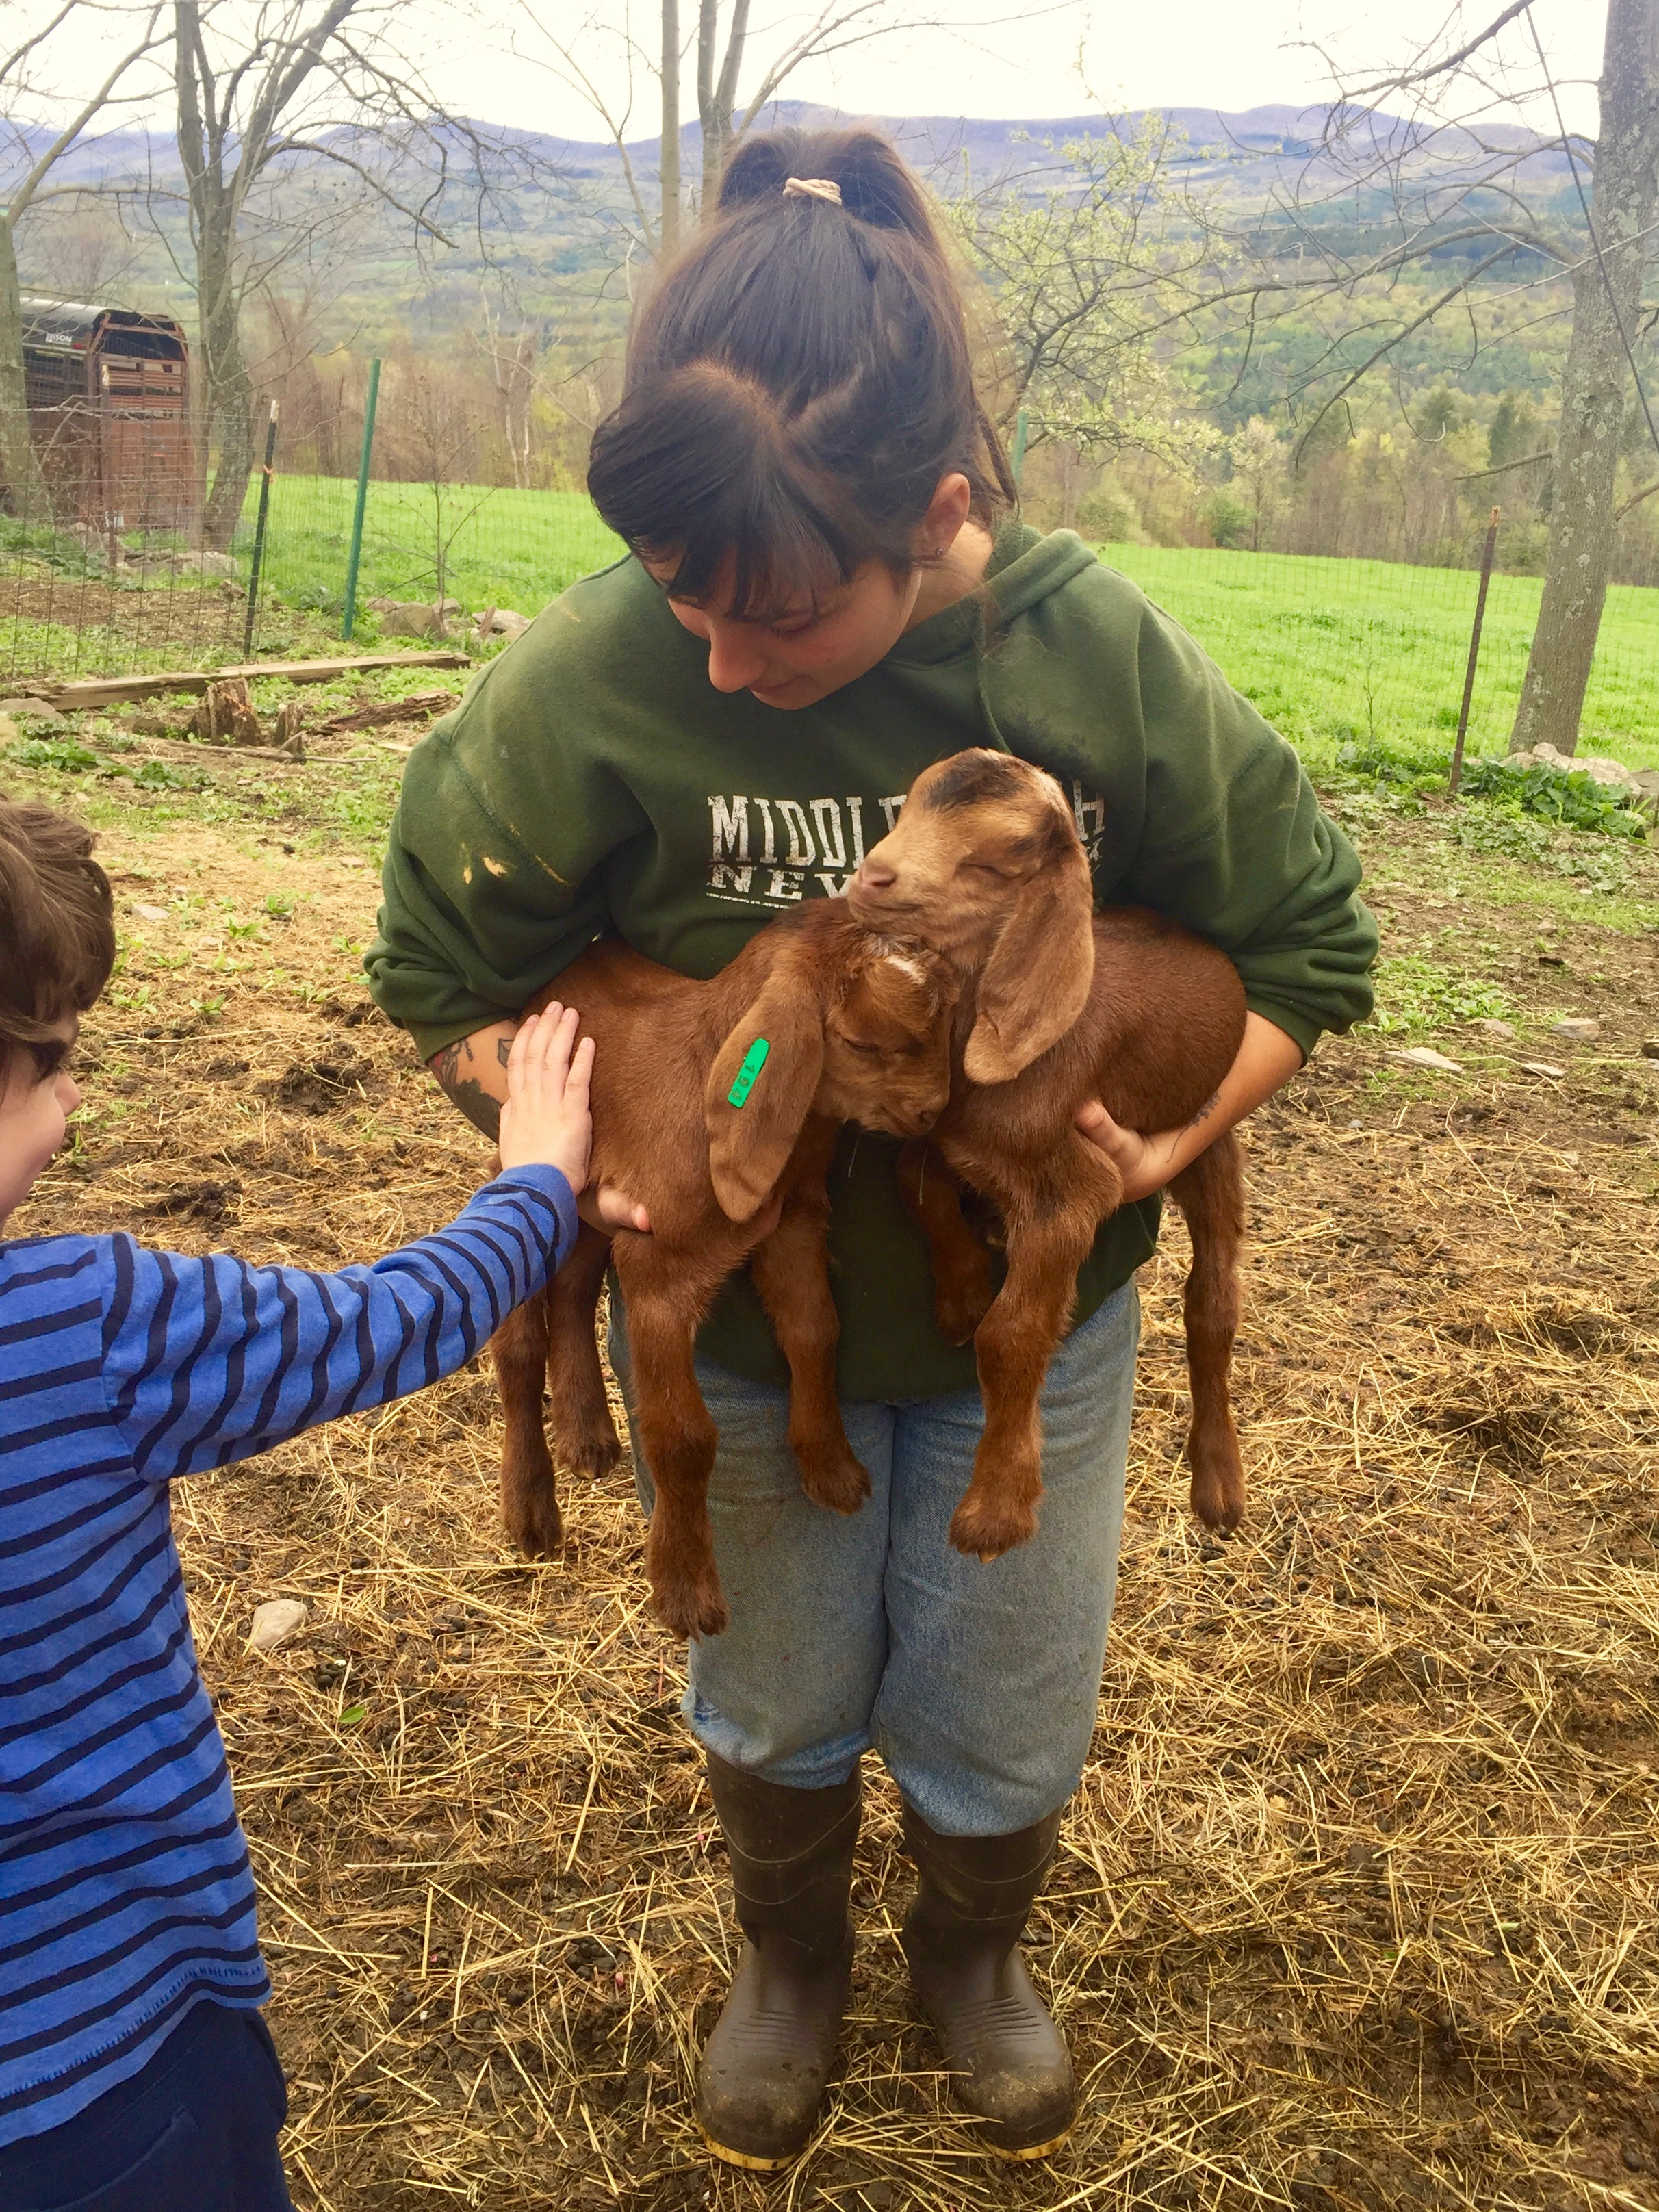 Oona offered Archer a goat to hold in his arms, but petting a goat was enough for him.